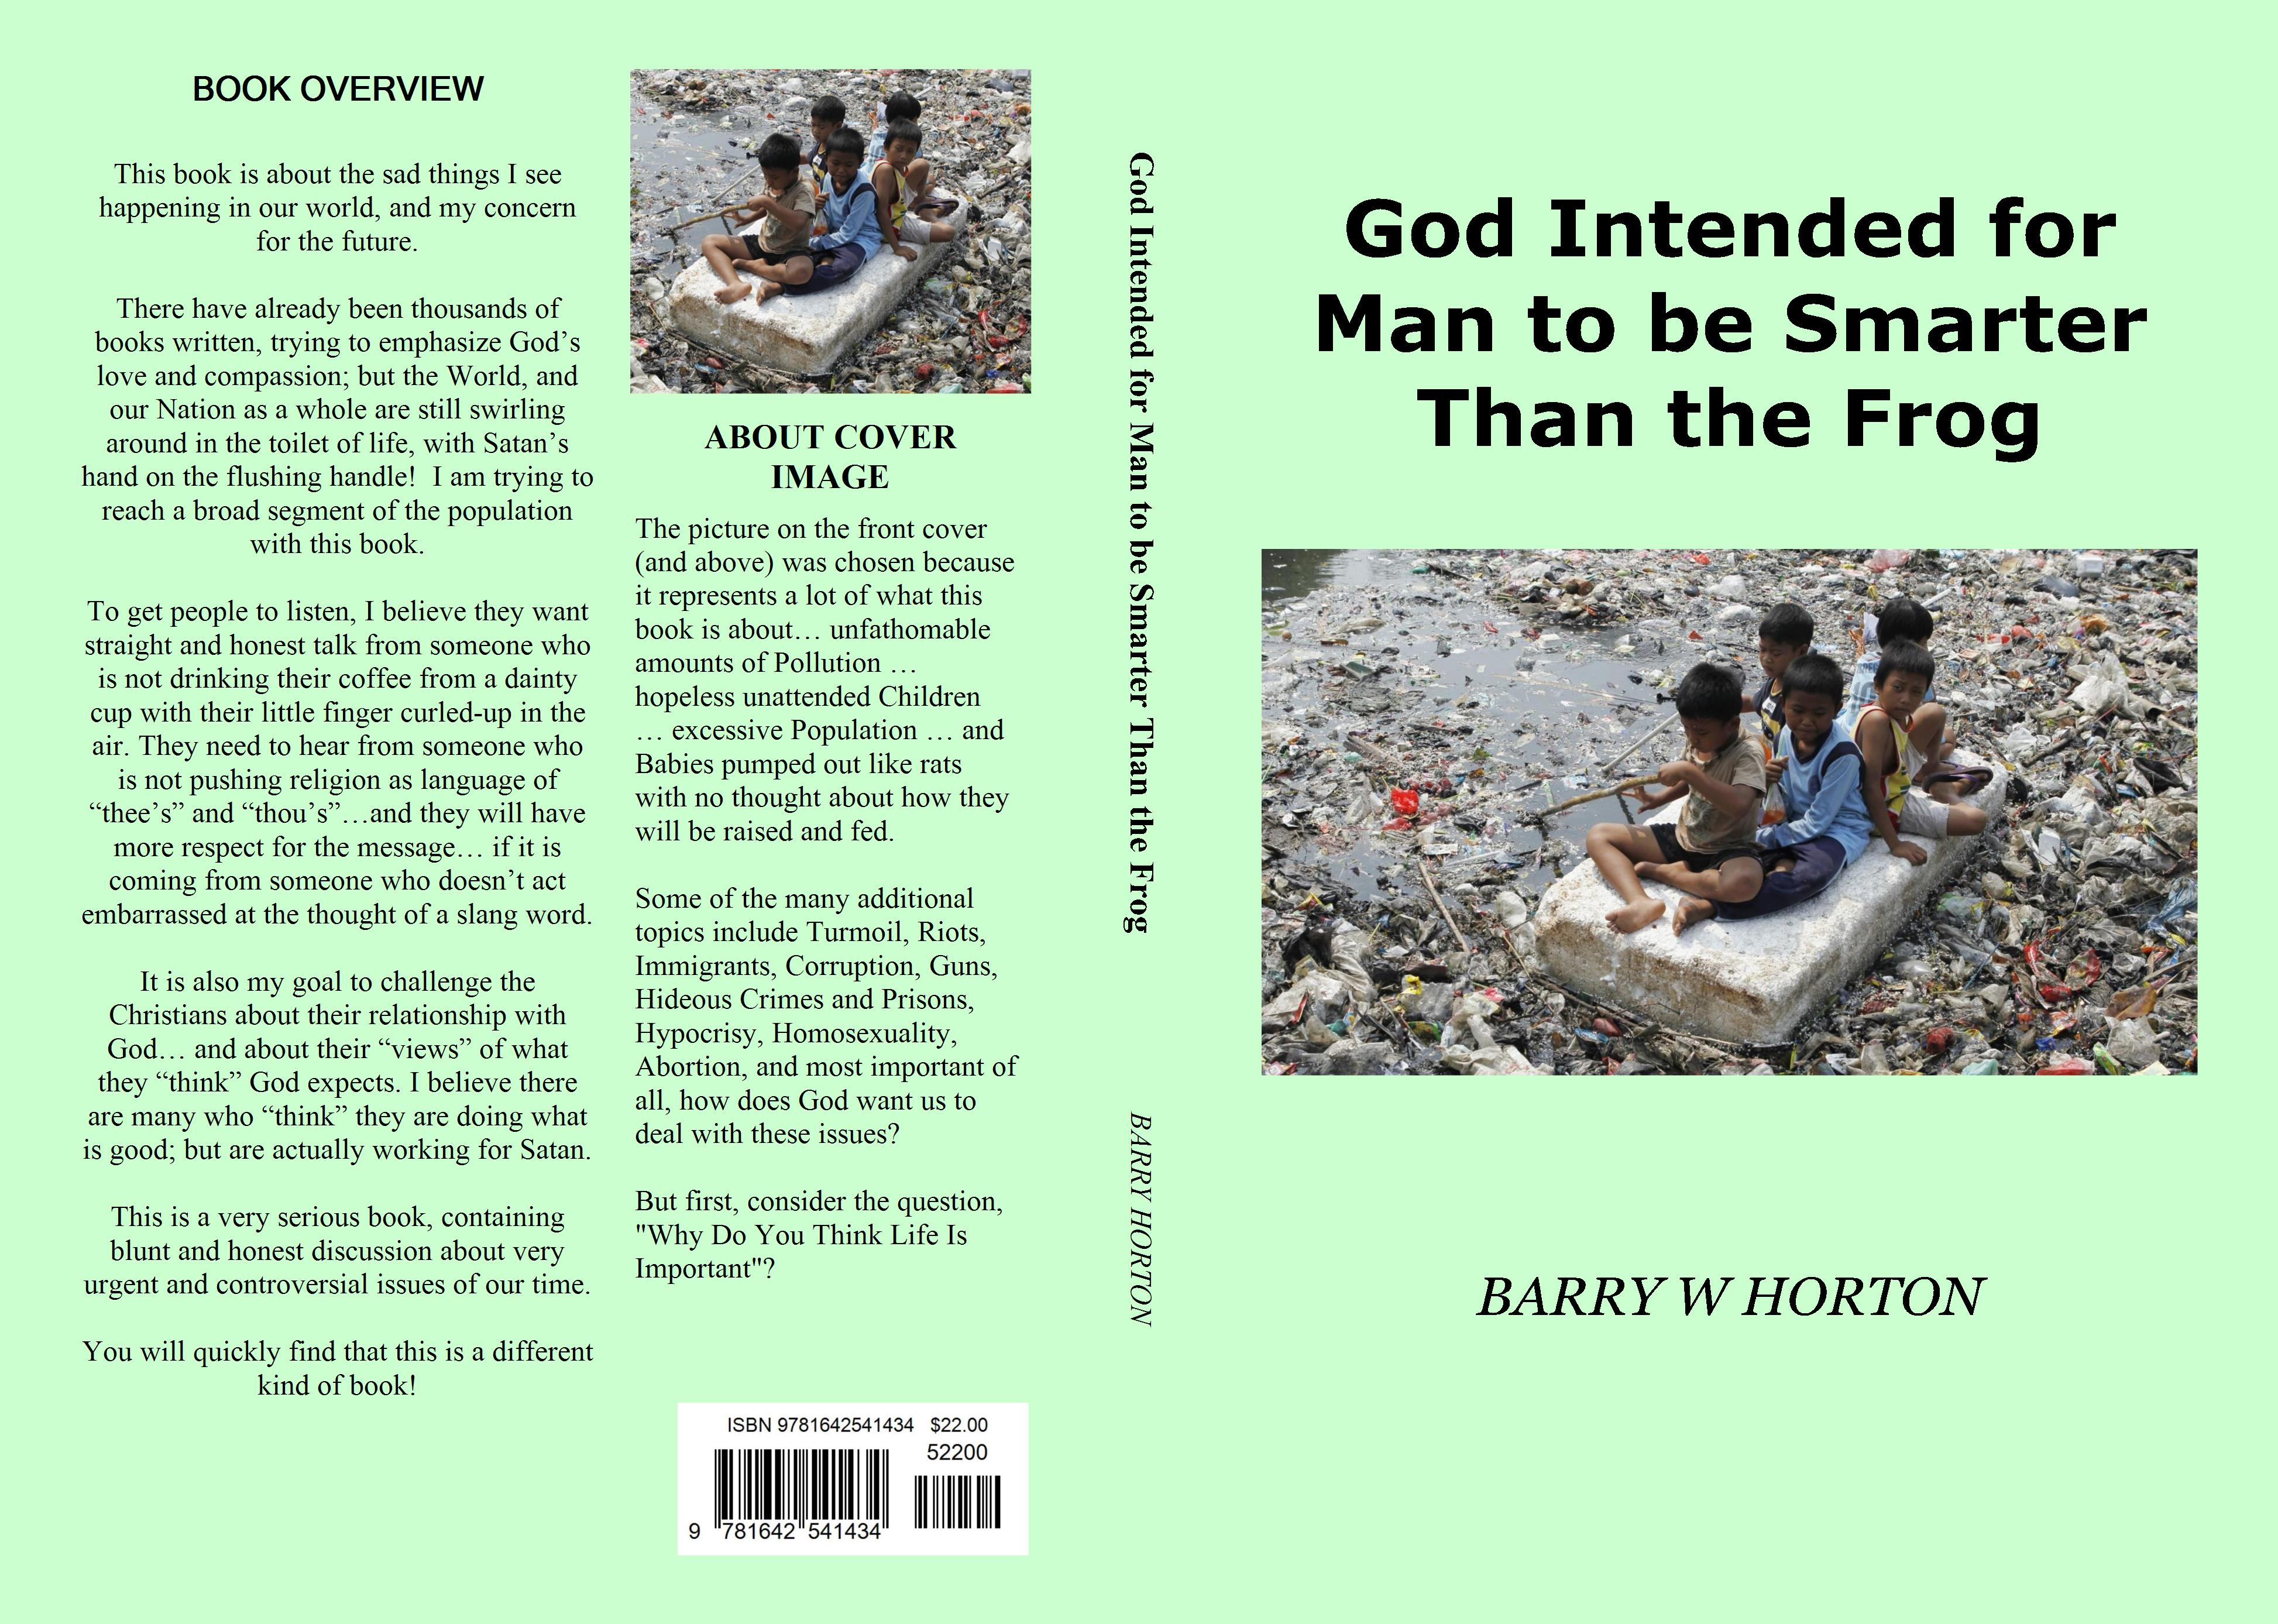 God Intended for Man to be Smarter Than the Frog cover image